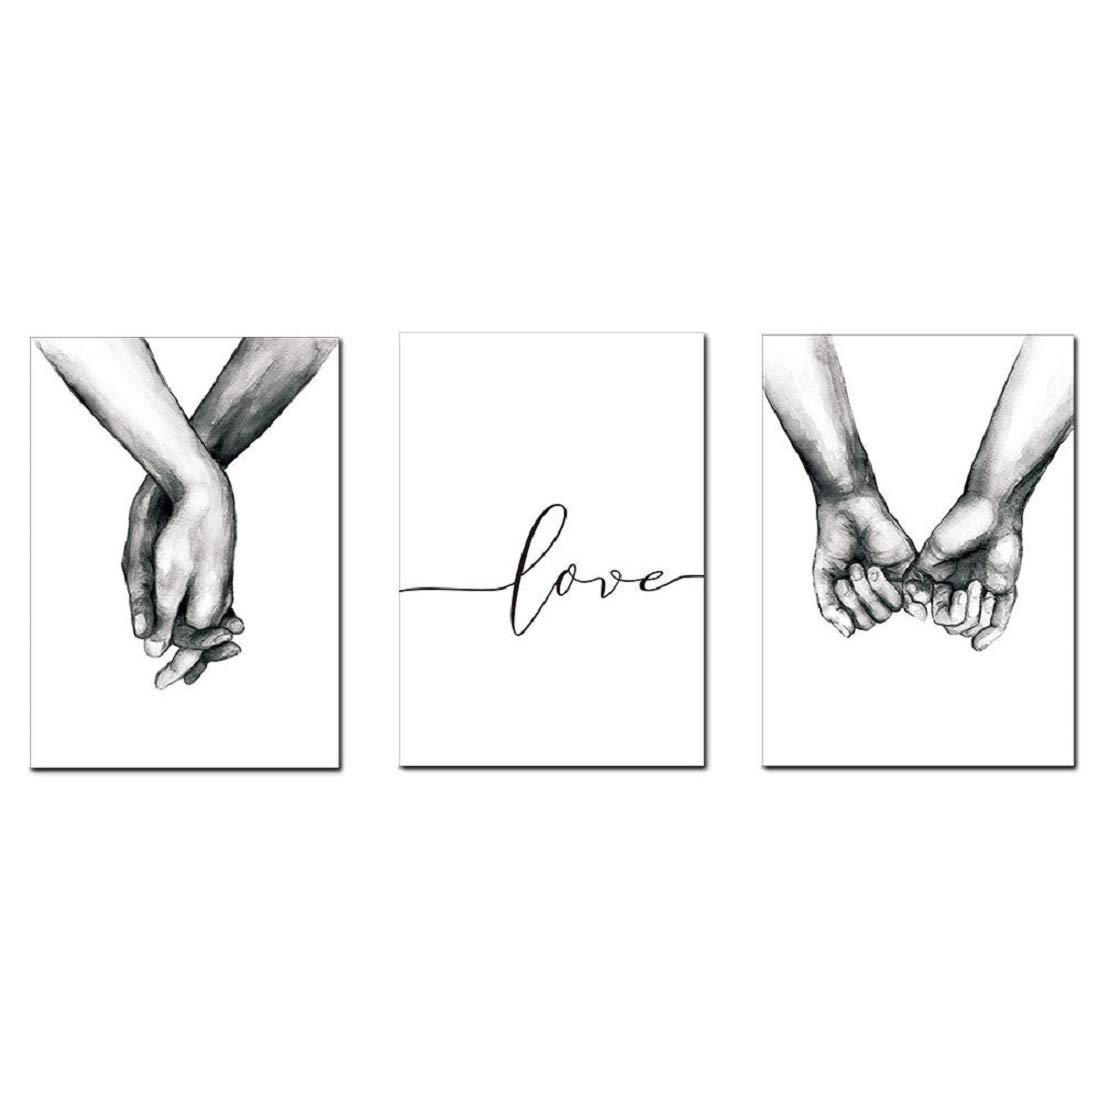 AEVIO Love and Hand in Hand Wall Art Canvas Print Poster Black and White Sketch Art Line Drawing Decor for Living Room Bedroom (Set of 3 Unframed, 8.3x12 inches)